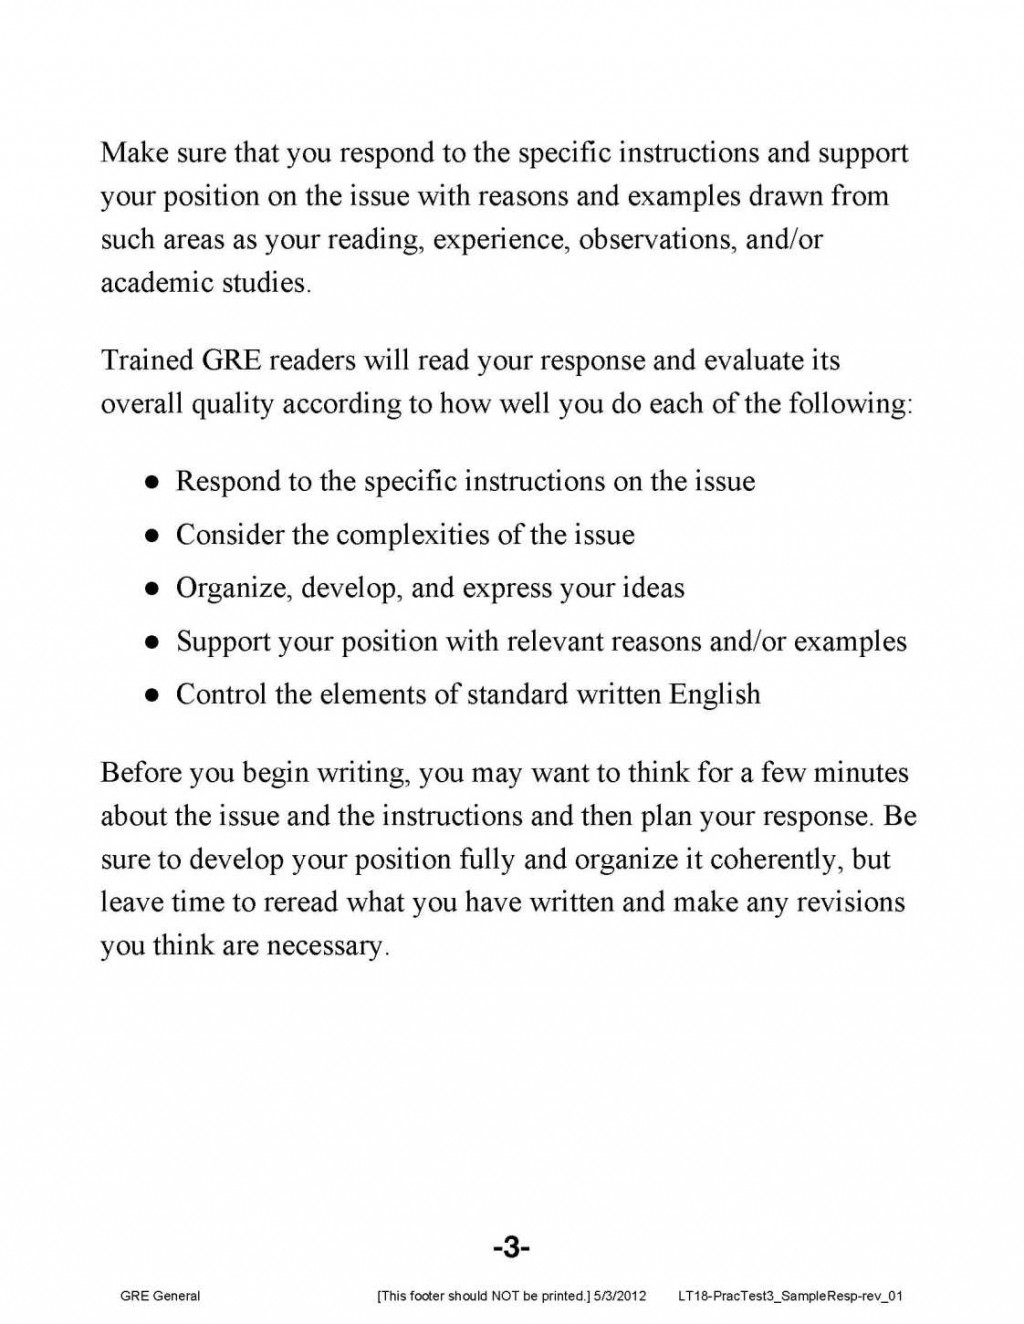 017 Gre Analytical Writing Sample Essays Biography Essay Unforgettable About Myself Elementary Self Large